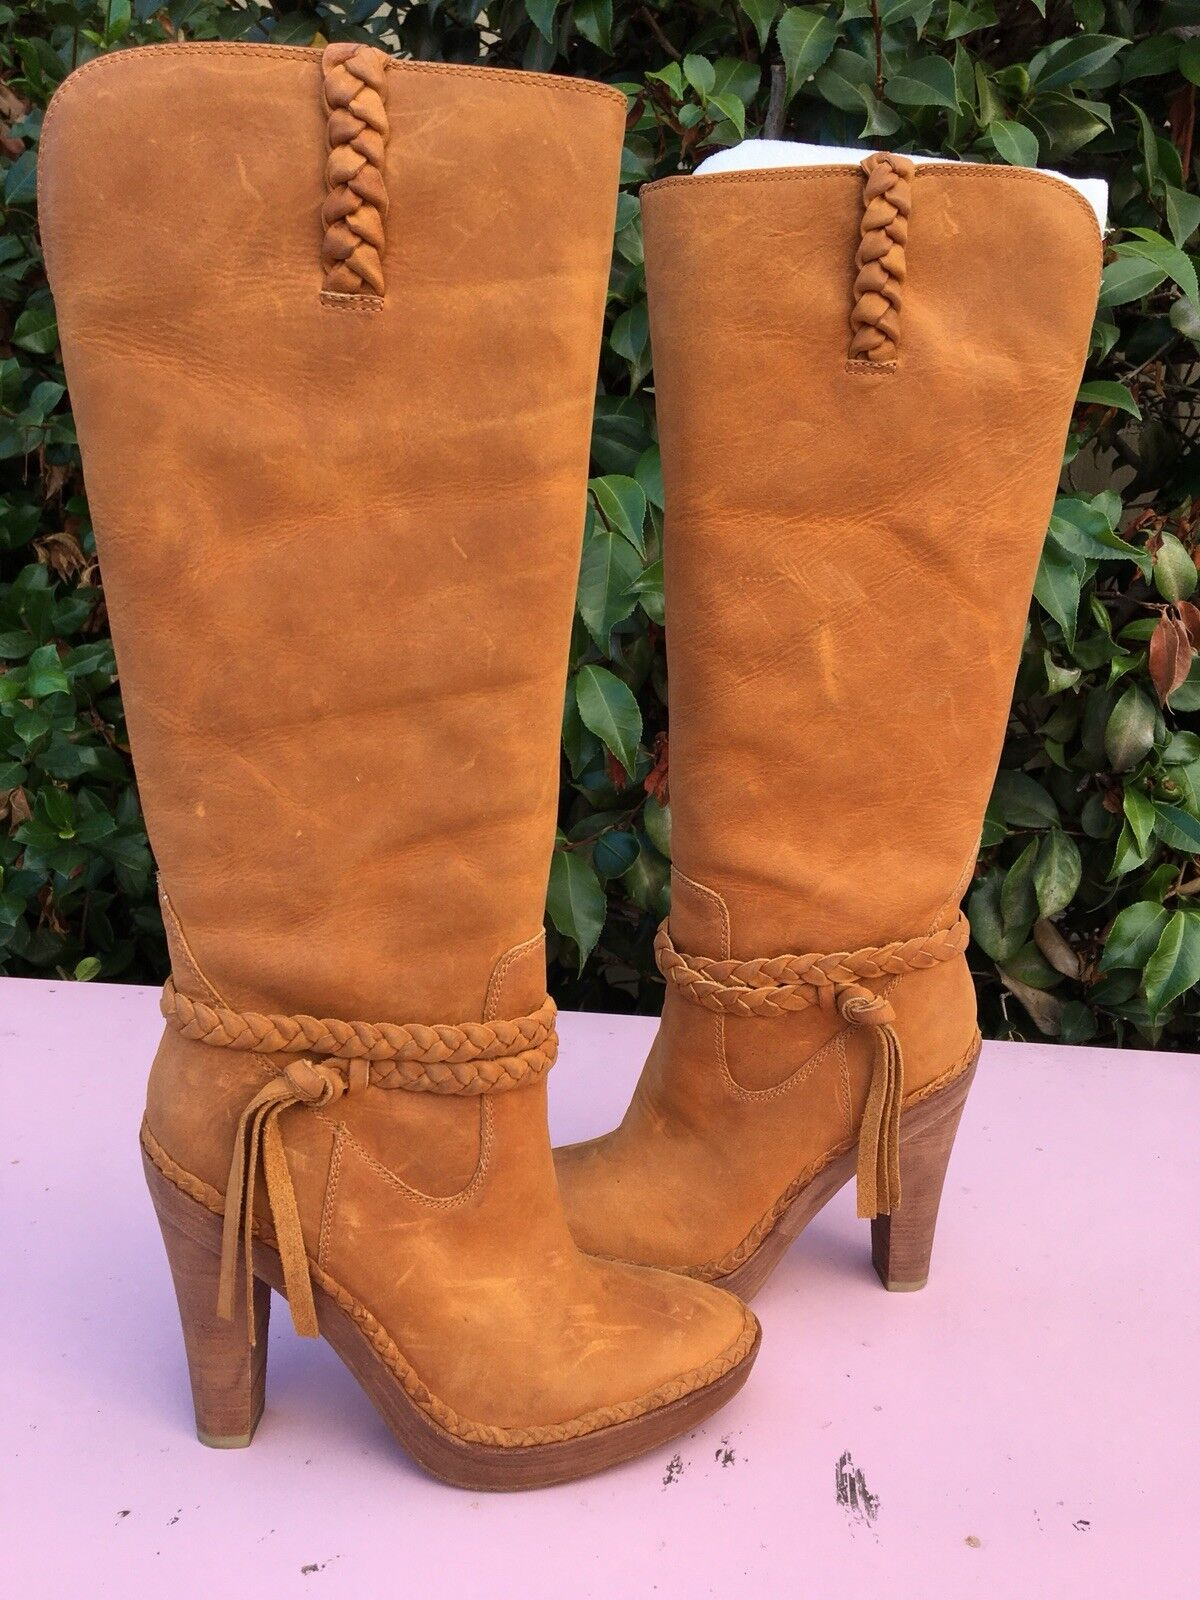 EUC. Nike Air Leather Boots, Series G, Tan, High Heel, Size 7.